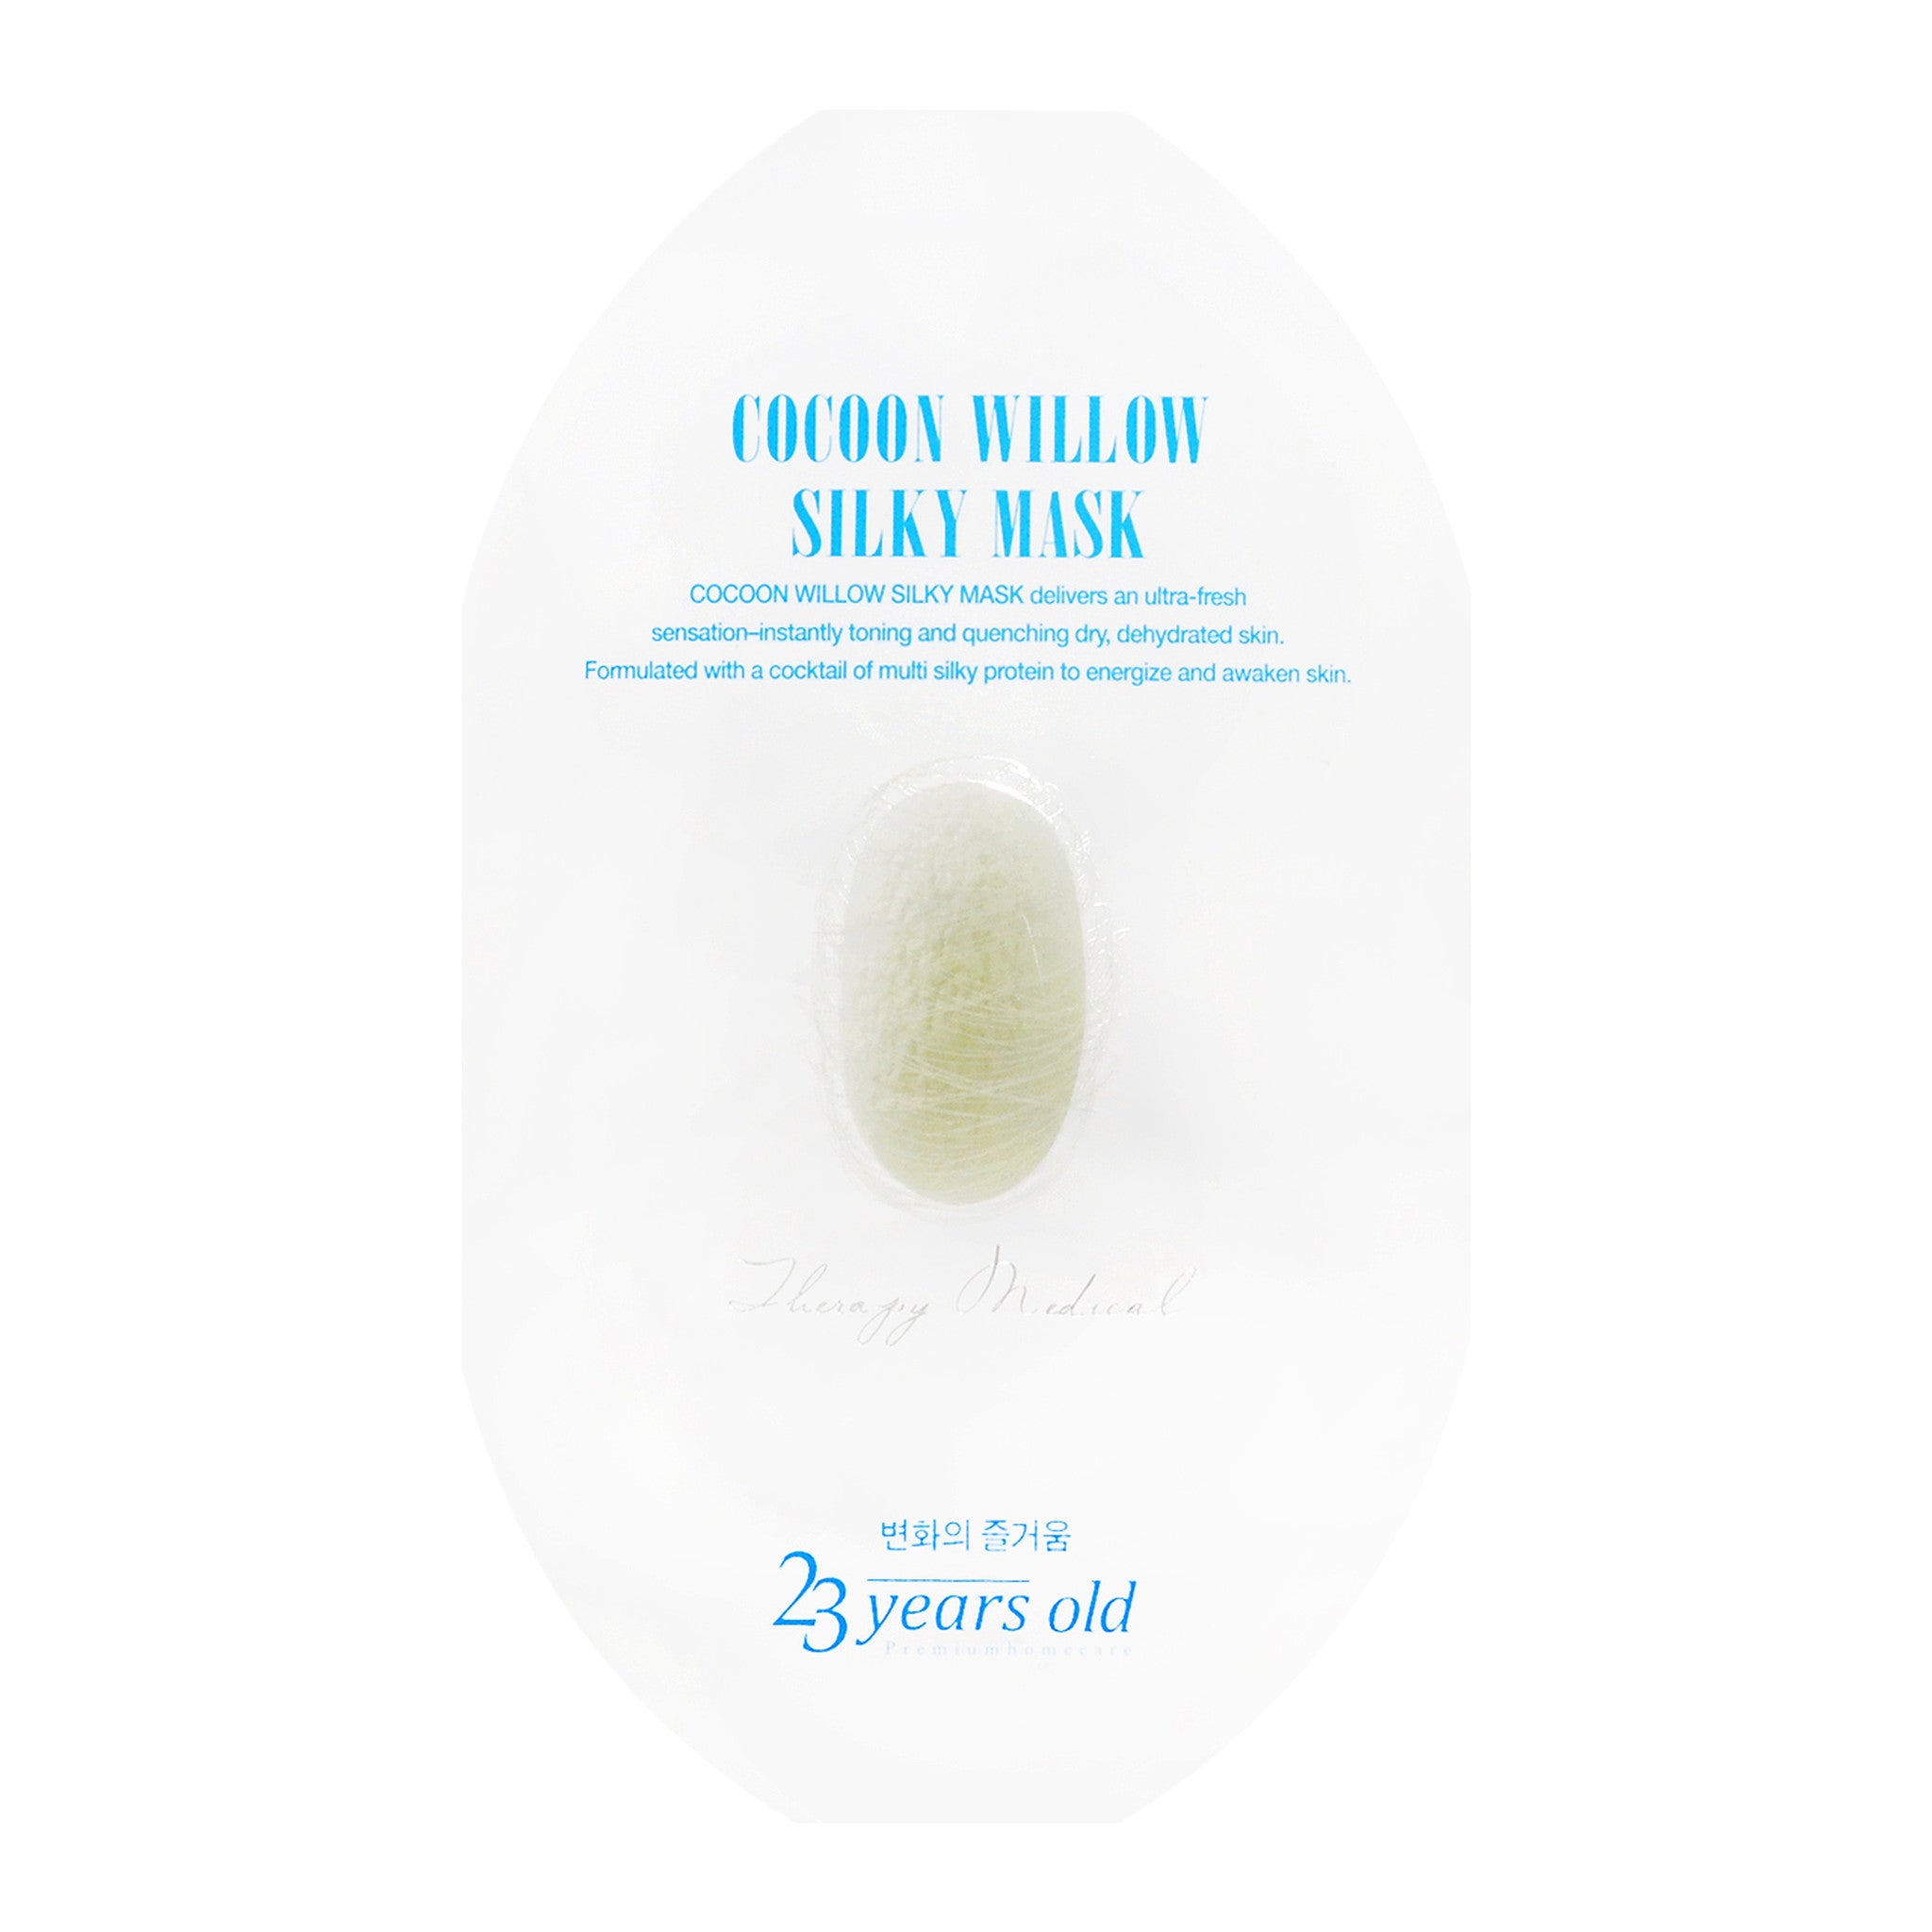 Cocoon Willow Silky Sheet Mask